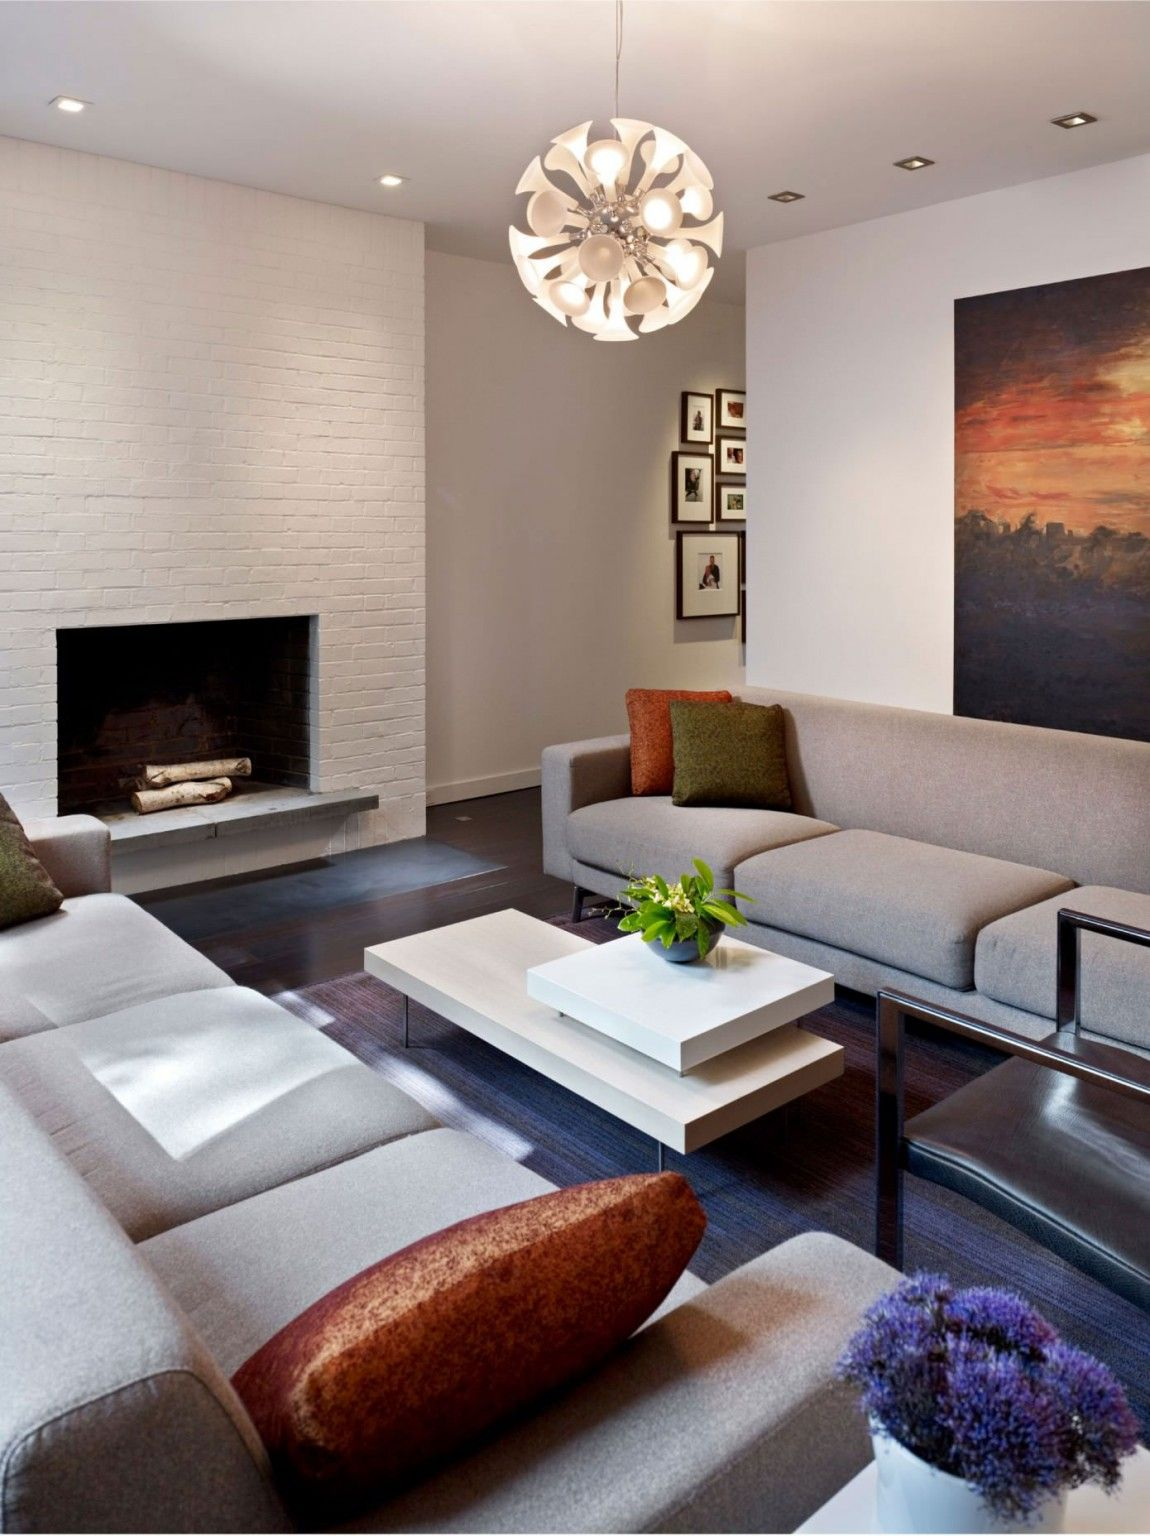 Merveilleux Society Hill Townhouse By K YODER Design (1)